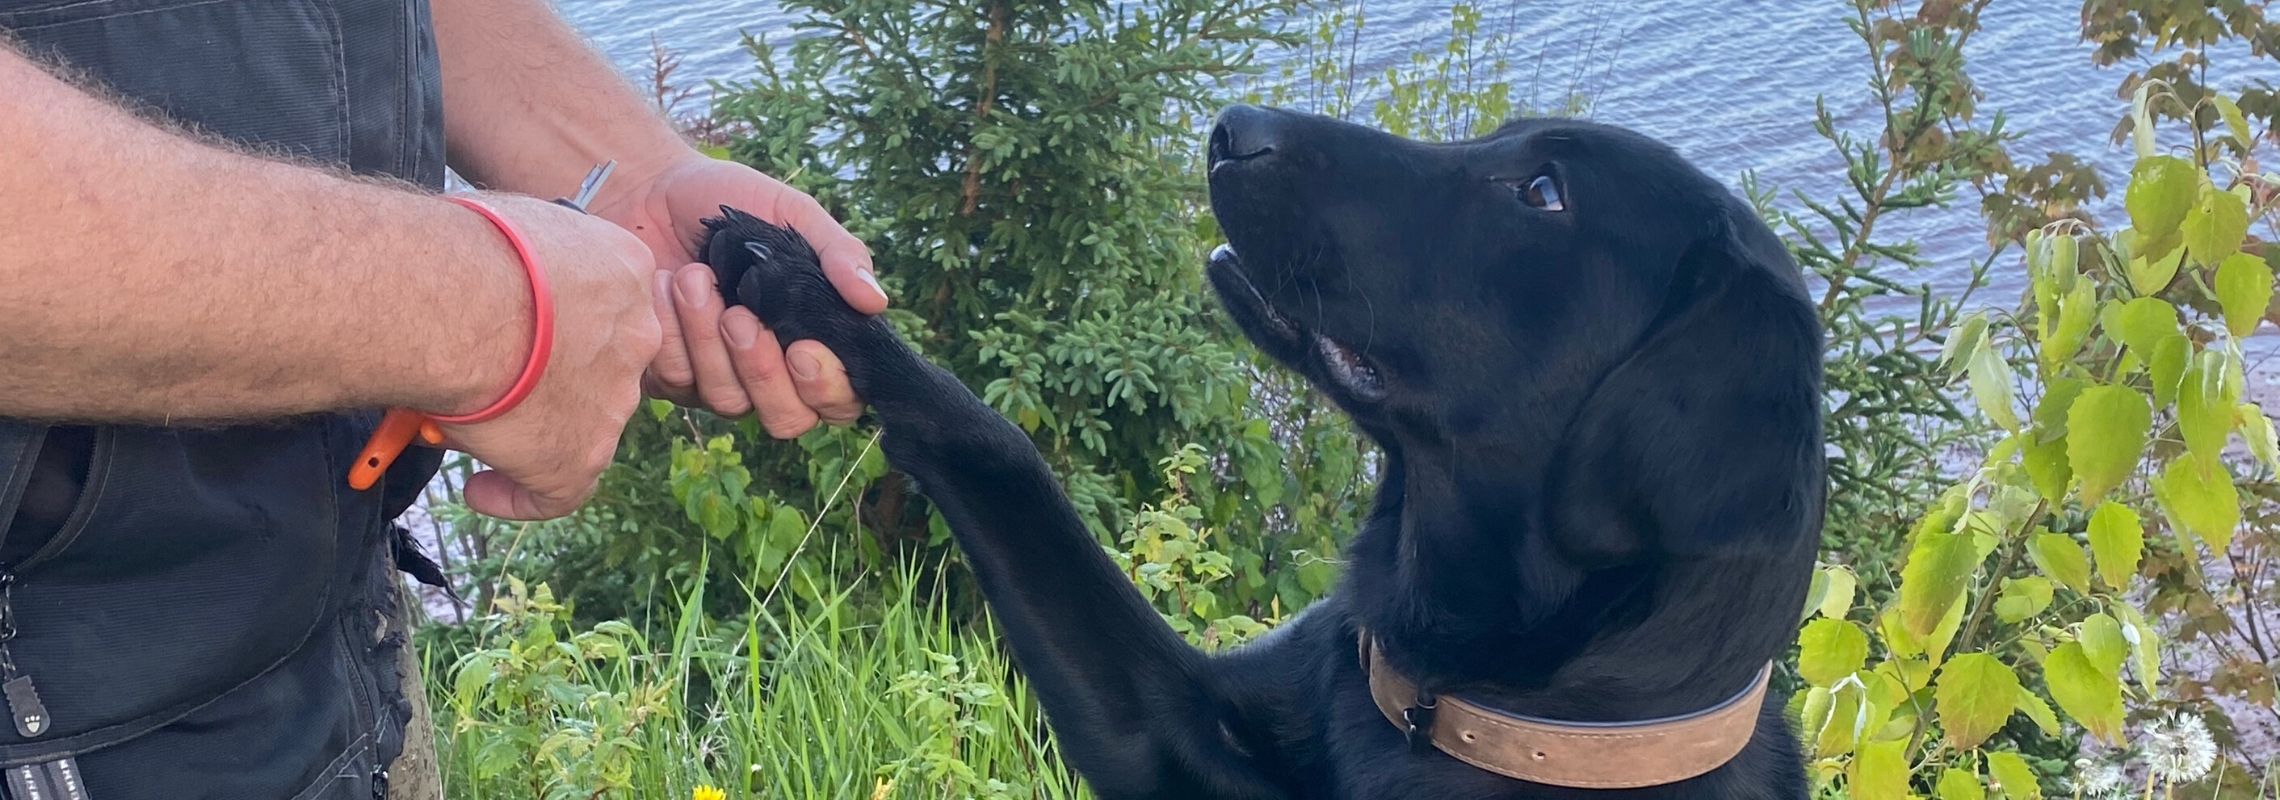 Black lab, Koal offering paw to get trimmed